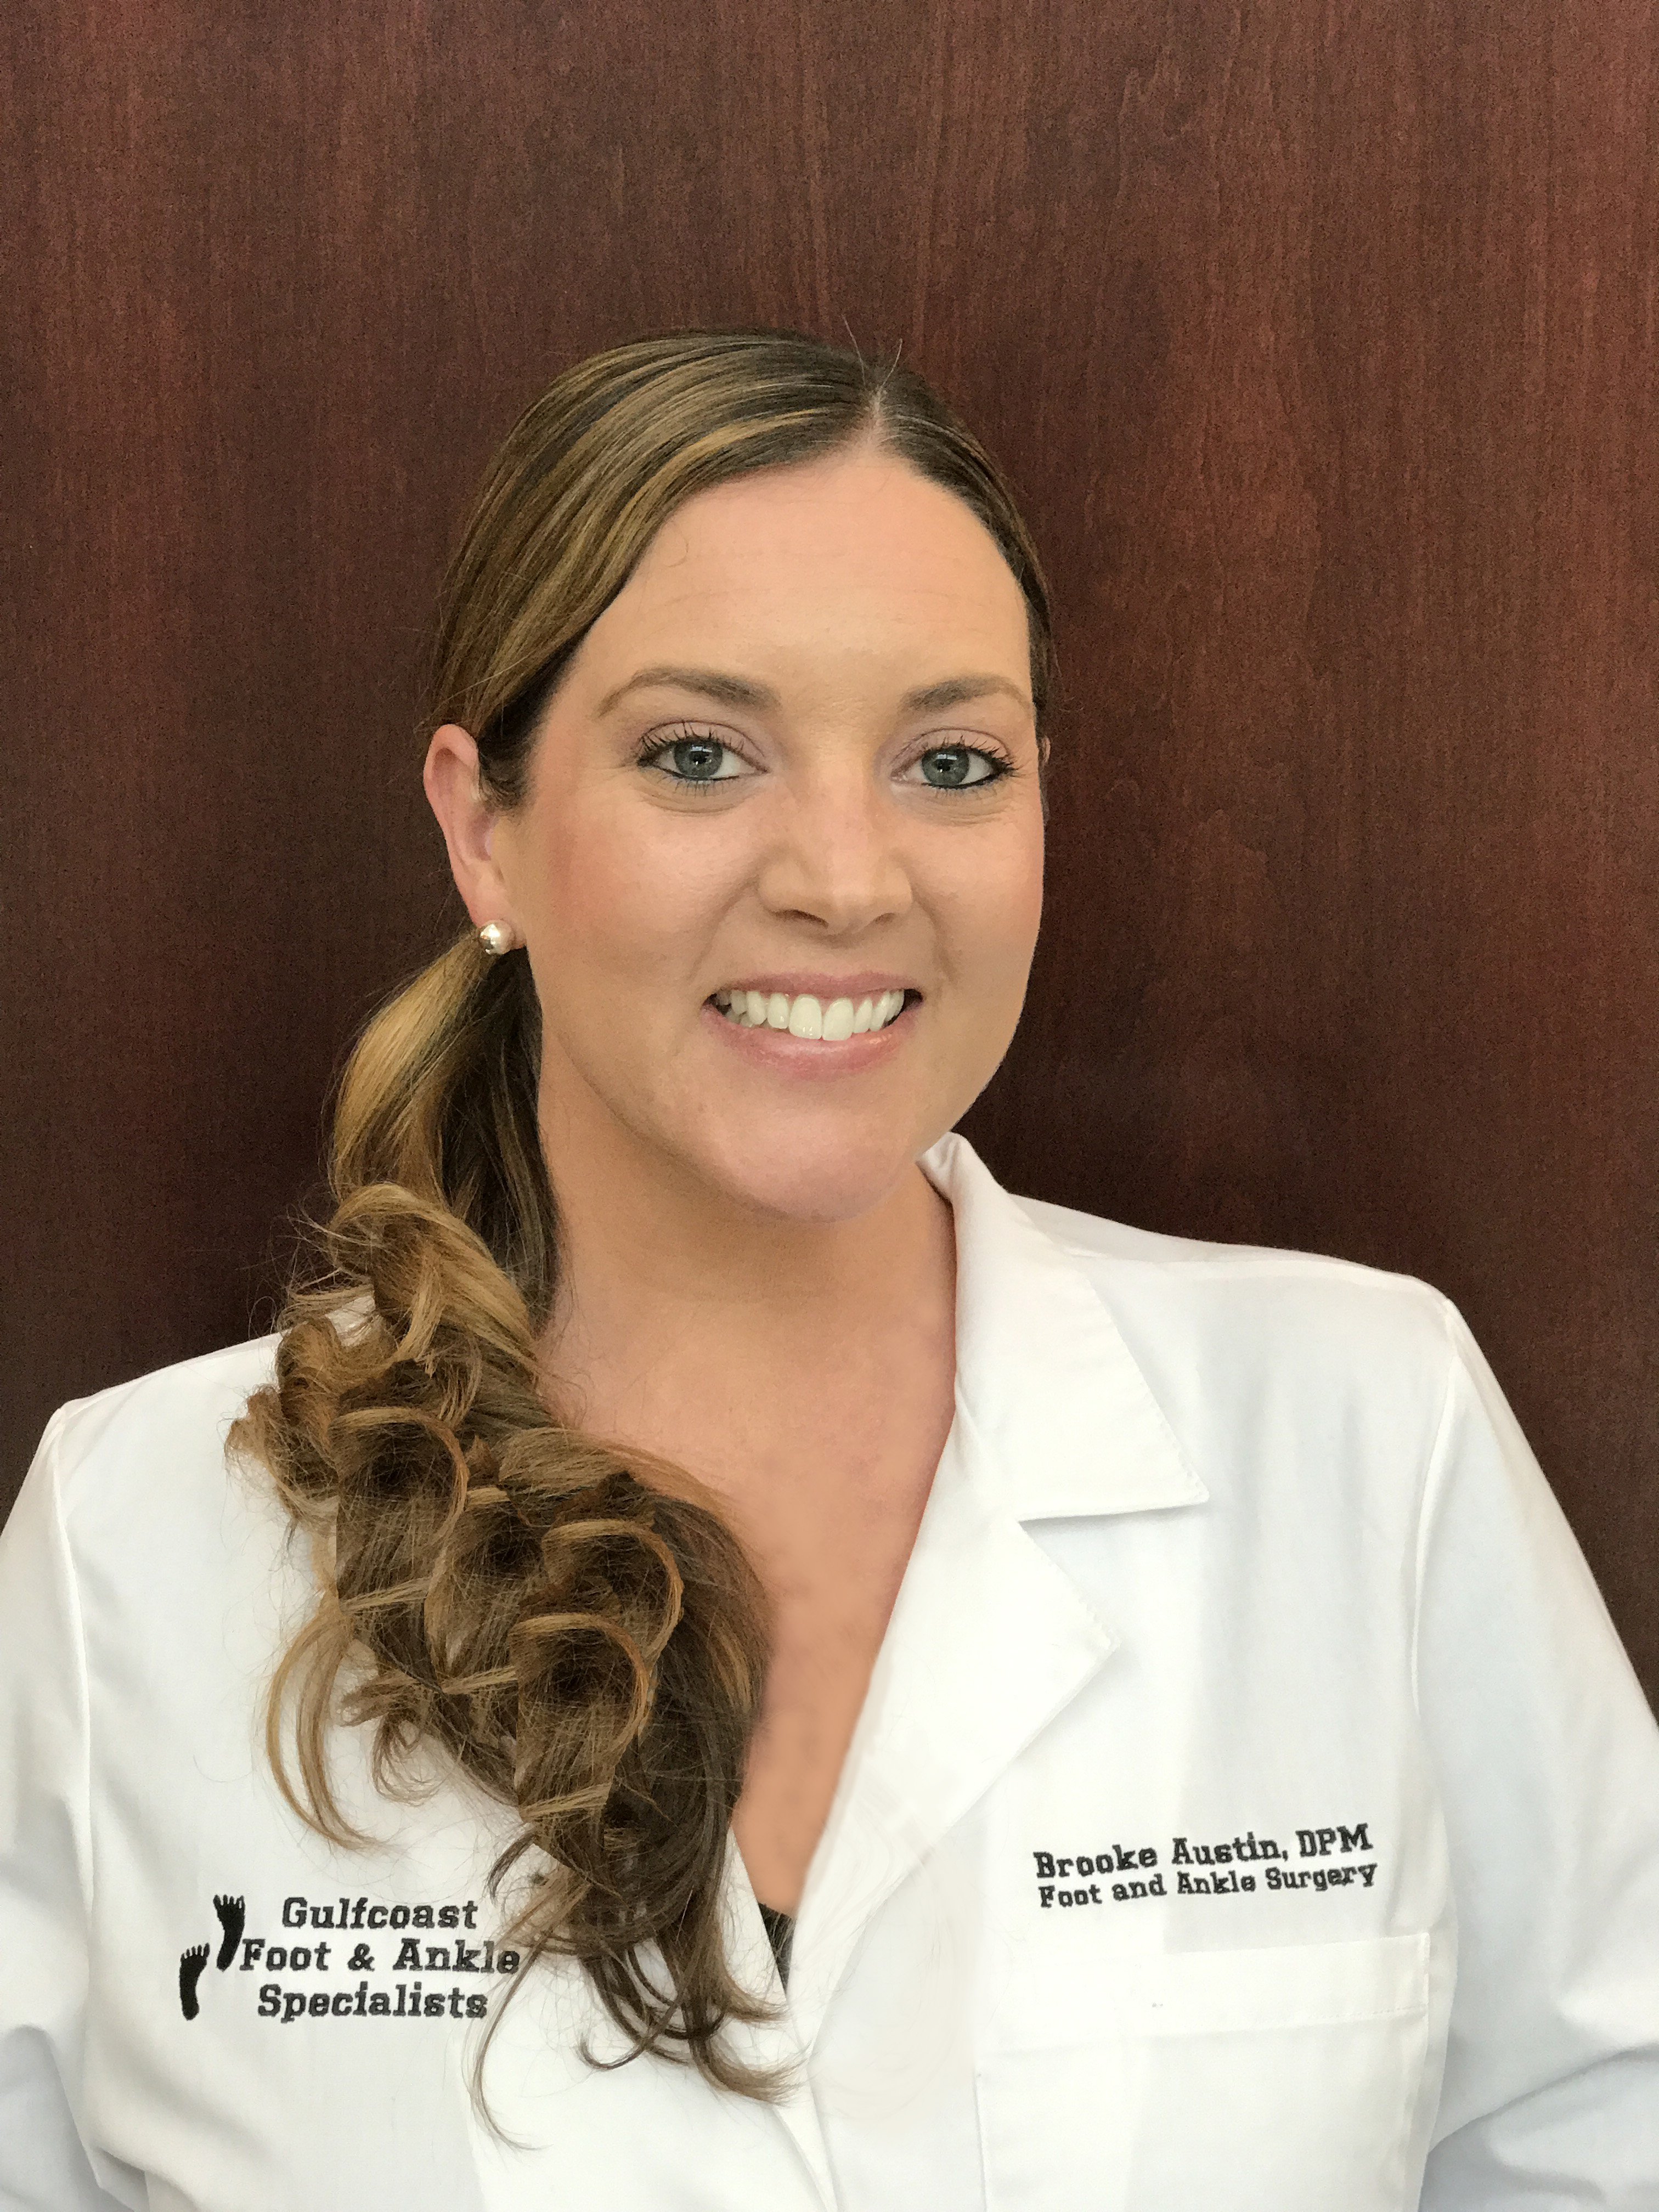 Carmel Foot Specialists >> Gulfcoast Foot & Ankle Specialists | Dr. Brooke Austin in Naples and Bonita Springs